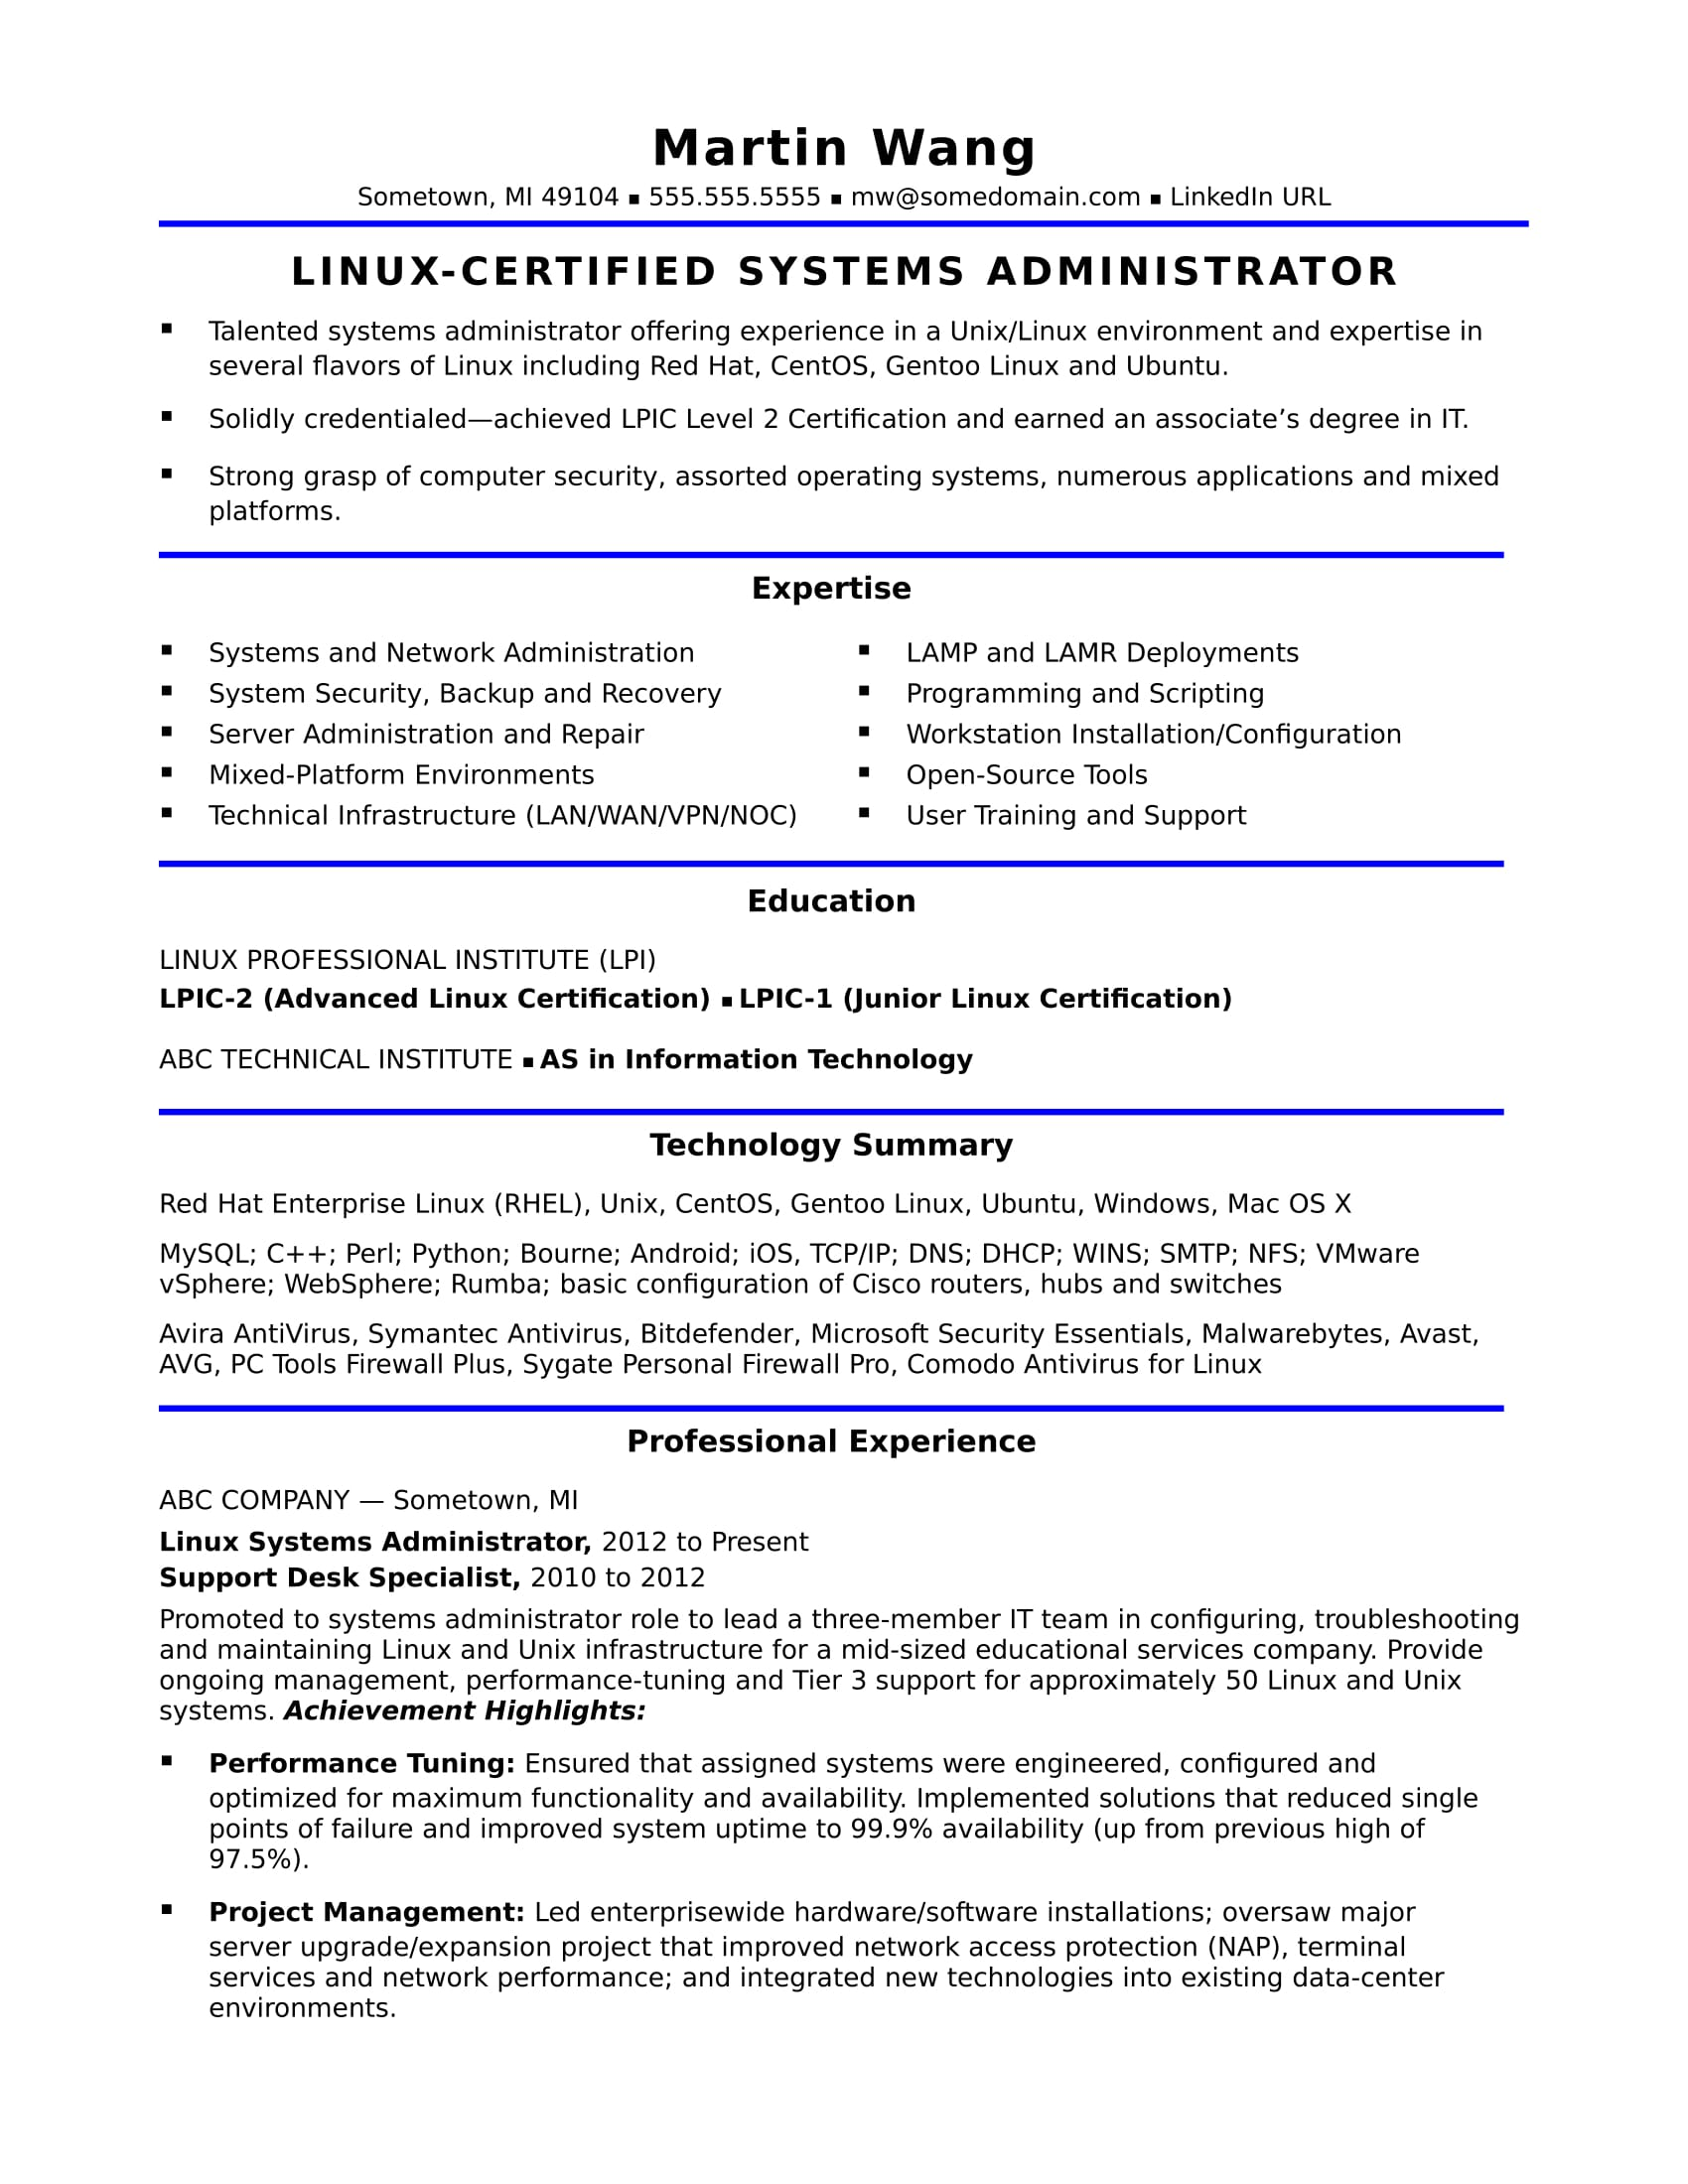 sample resume for midlevel systems administrator monster troubleshooting skills executive Resume Troubleshooting Skills Resume